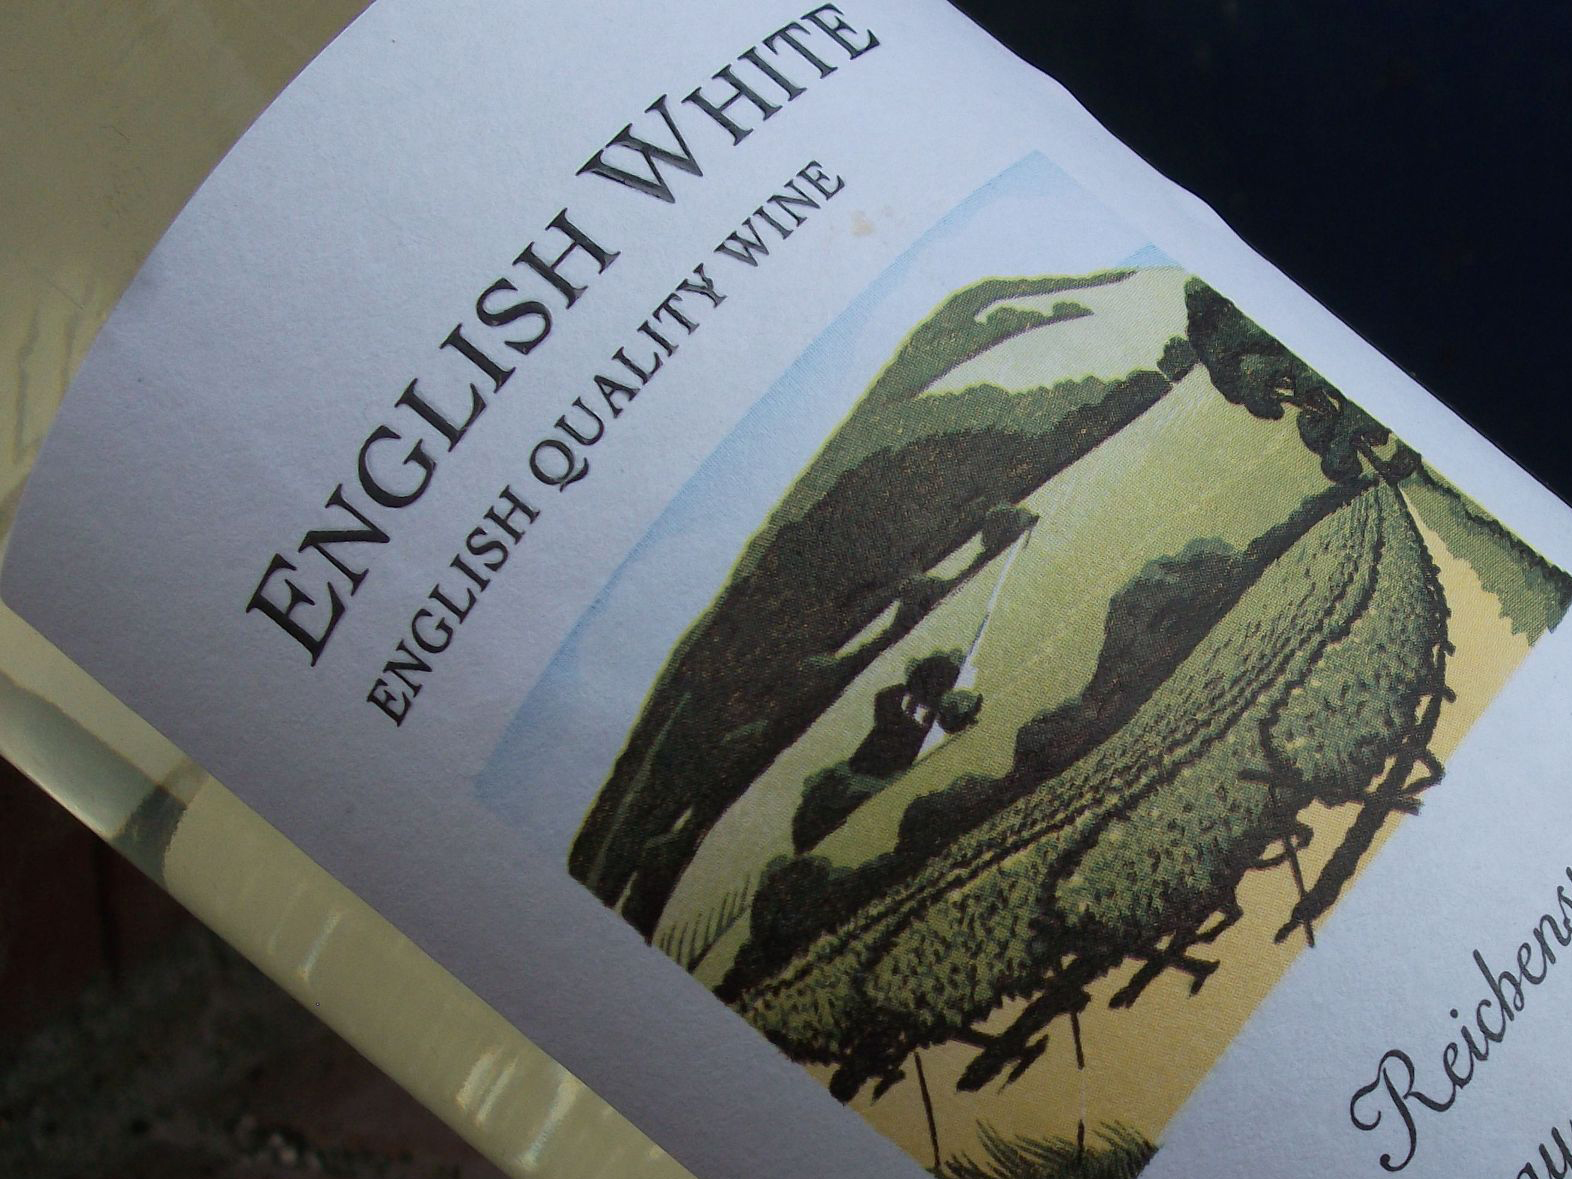 A bottle of English White quality wine discover England's and Wales' vineyards